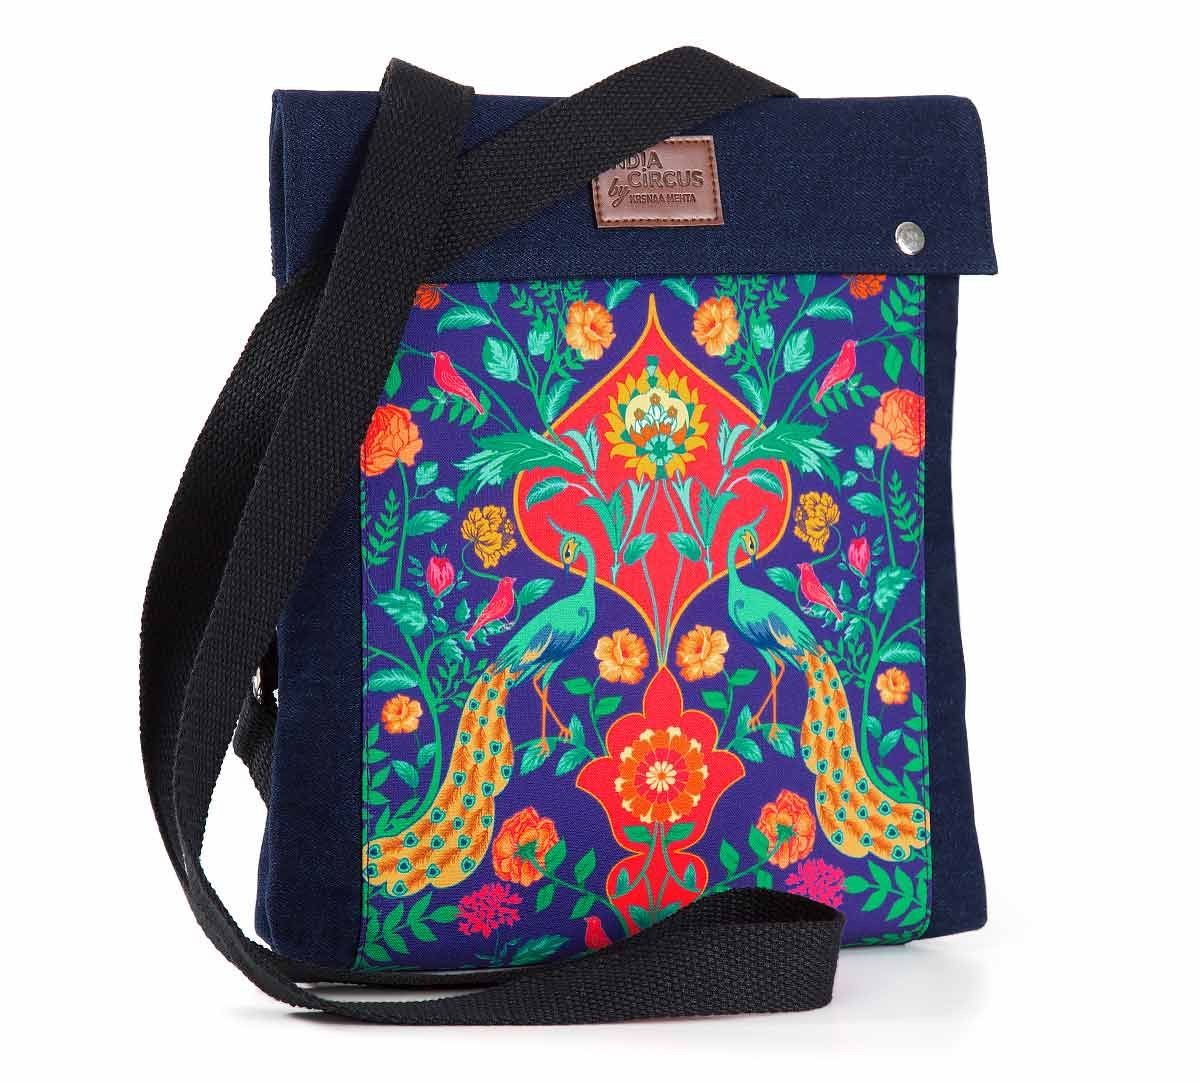 India Circus Peacock Outburst Sling Denim Backpack